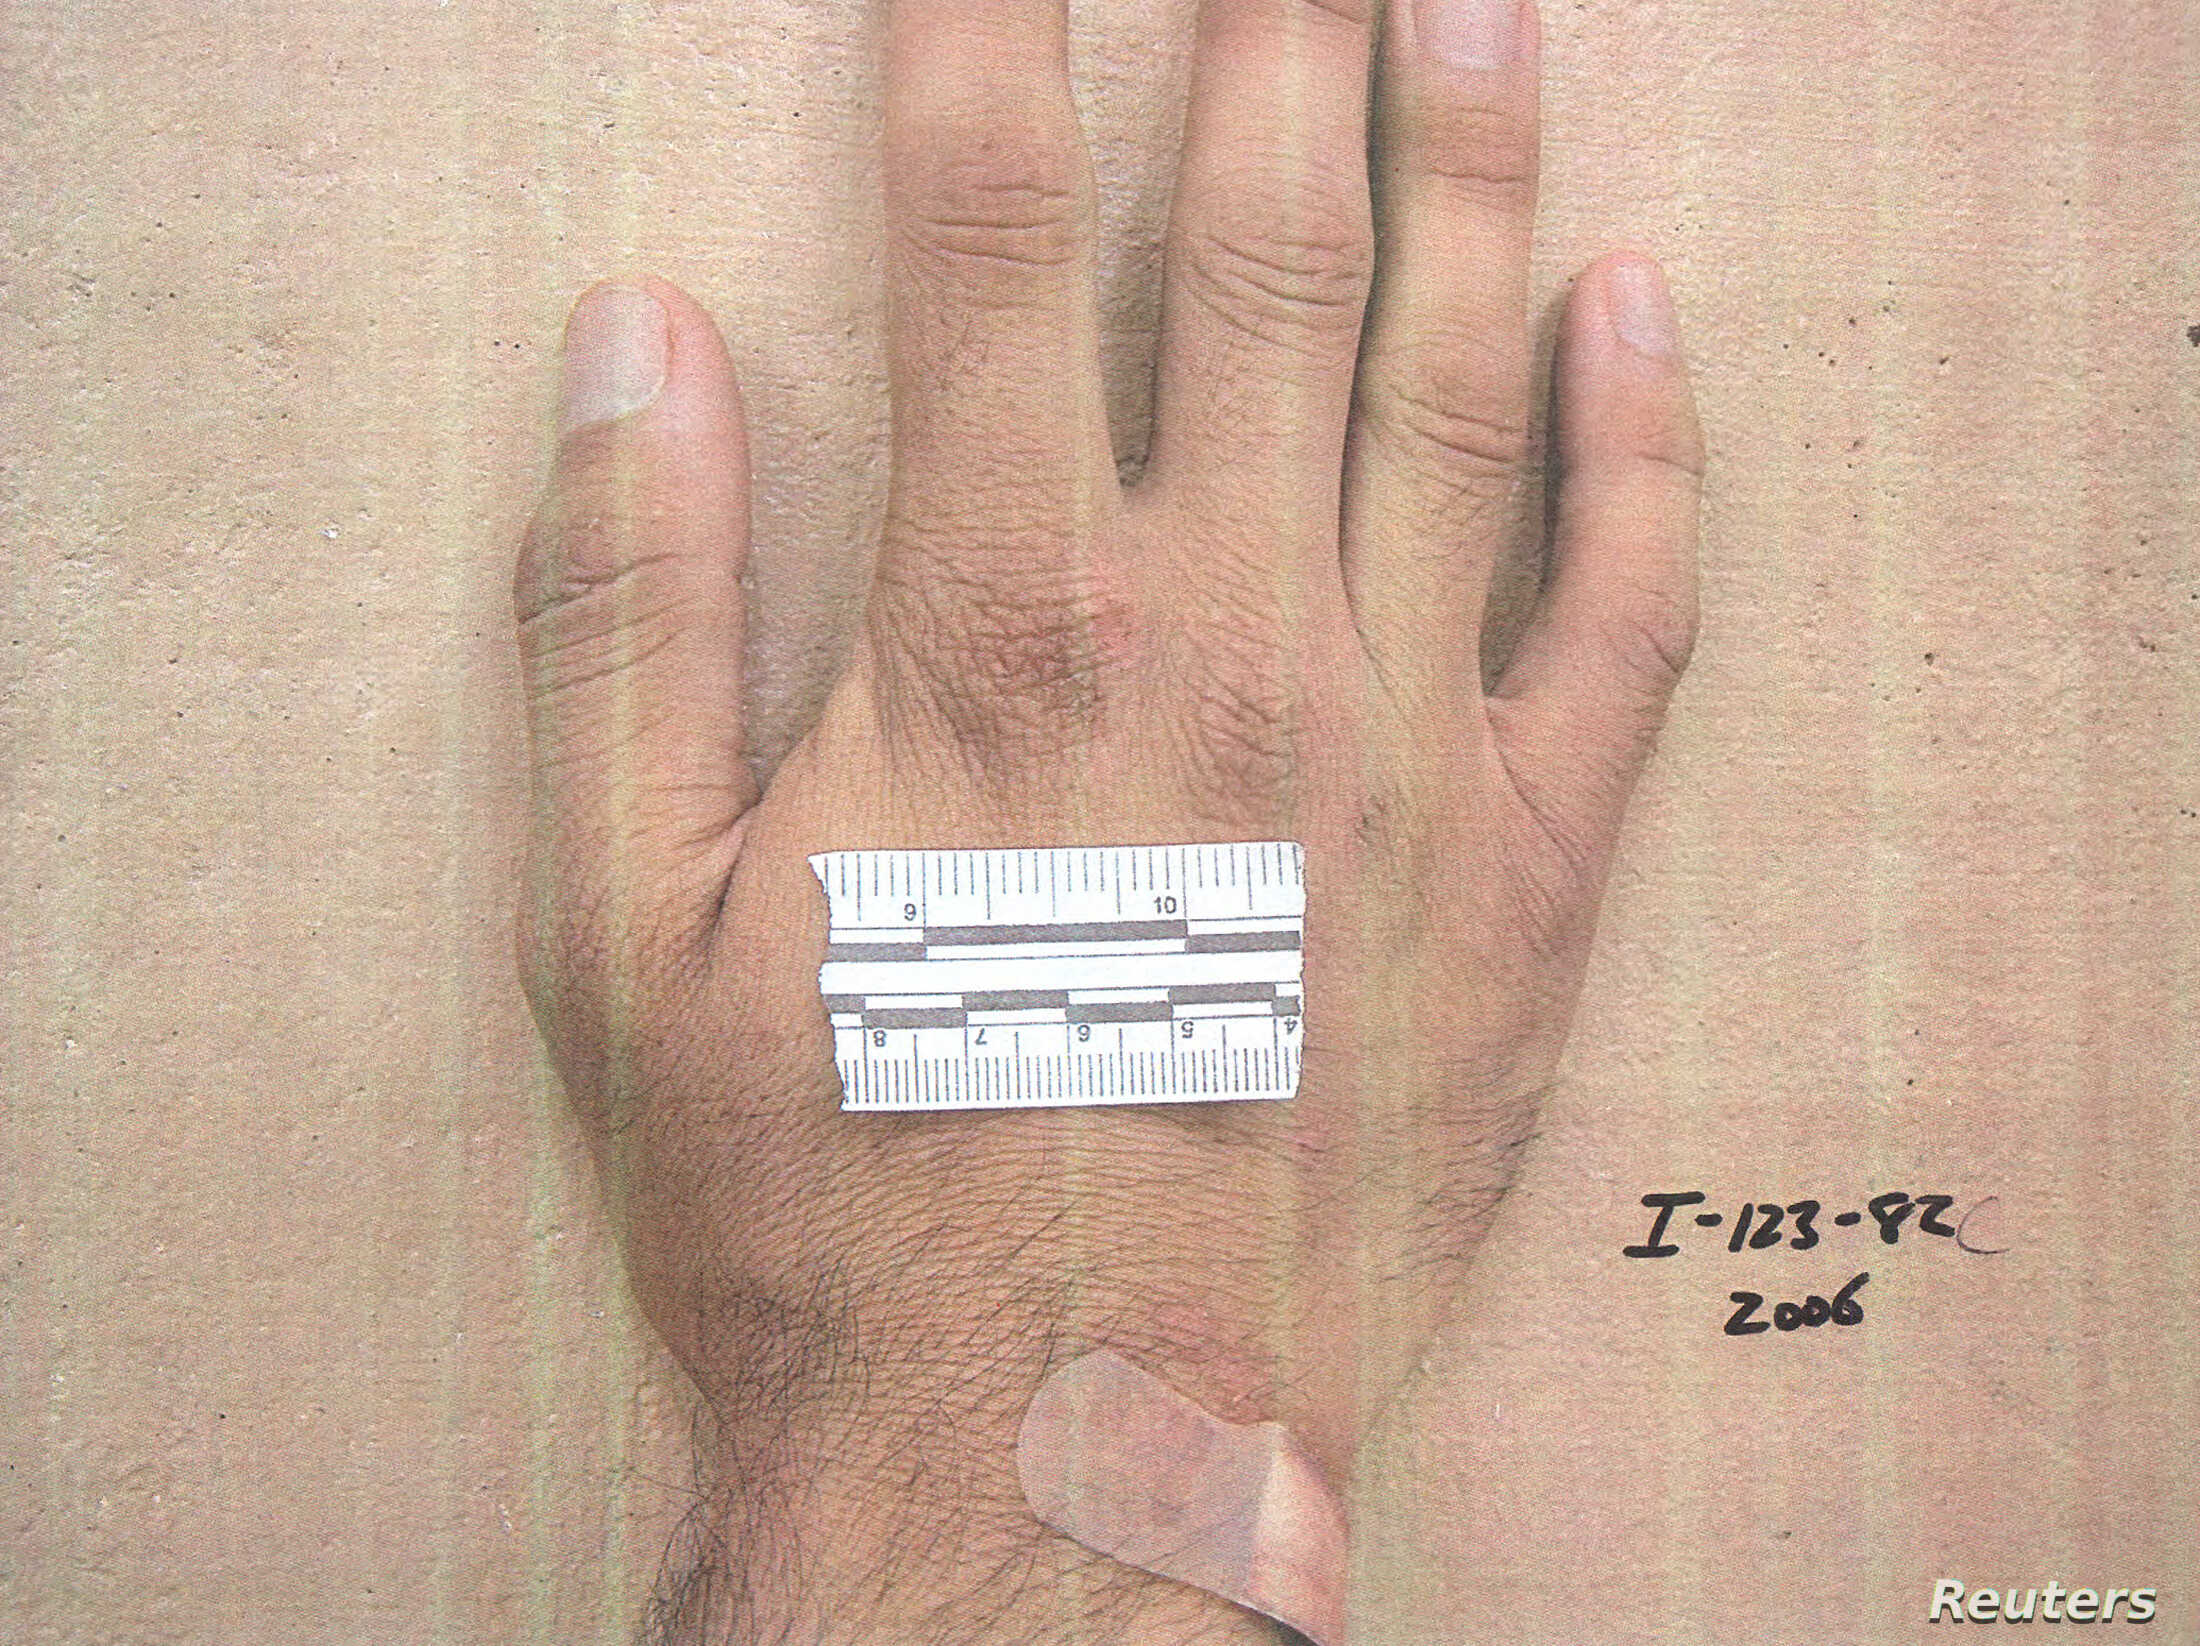 A measurement strip lies on the hand of a detainee in an undated photo from Iraq's Abu Ghraib prison, among 198 images released in a Freedom of Information Act lawsuit against the U.S. Department of Defense in Washington, D.C., Feb. 5, 2016.